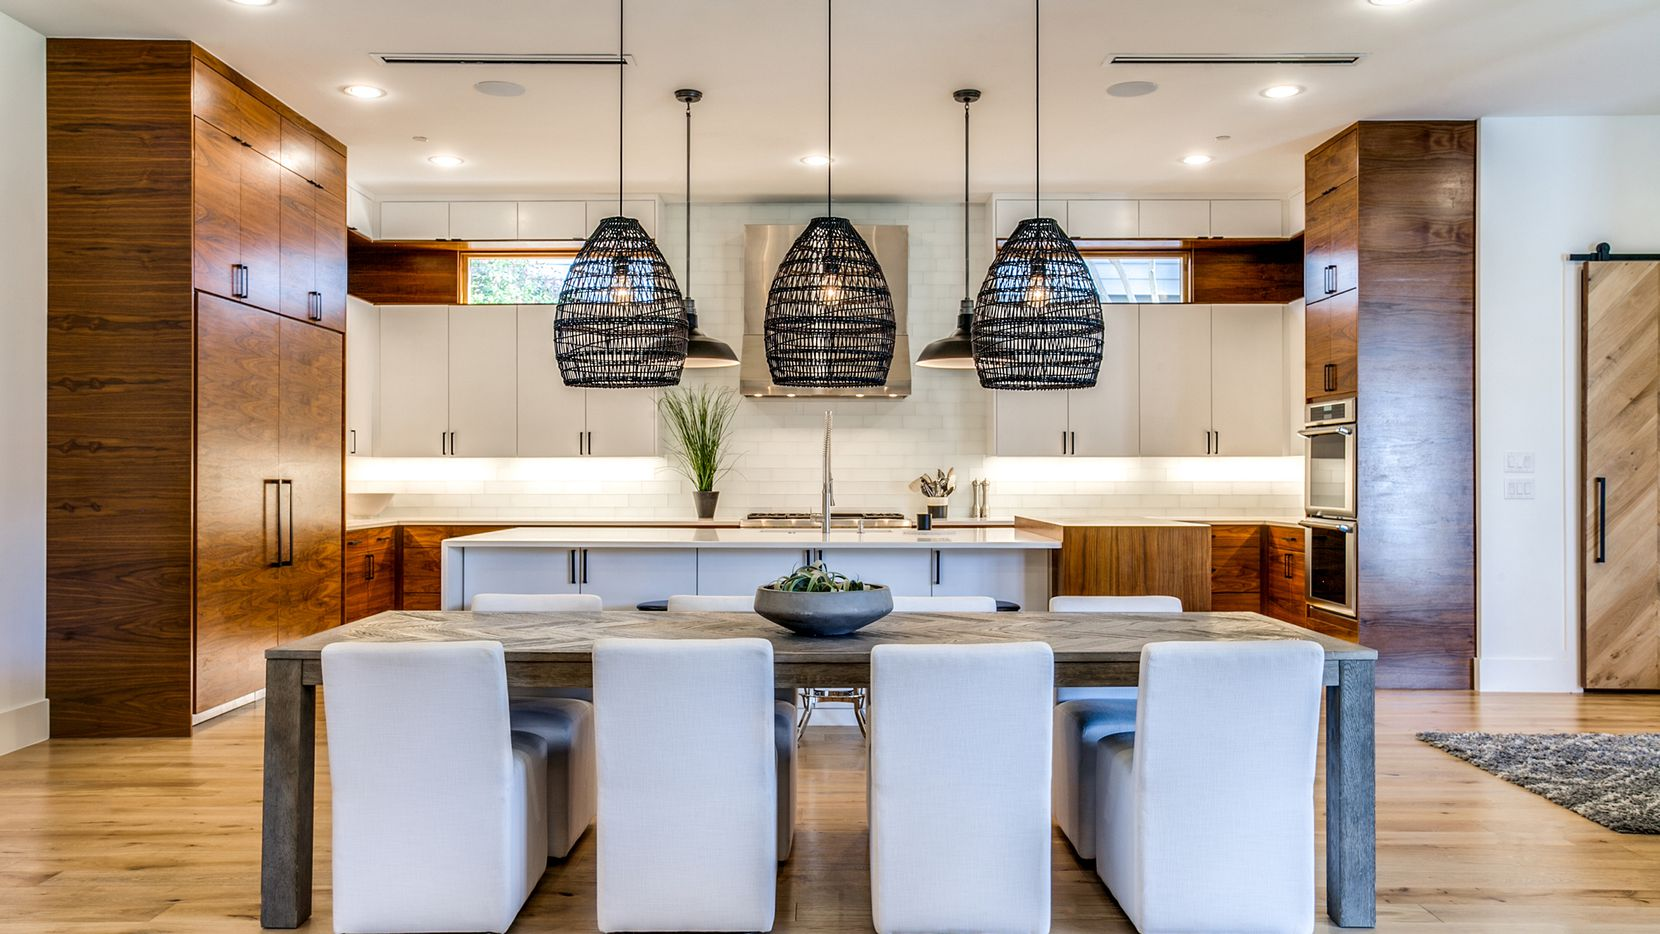 Completed in 2019, the home at 3233 Northwest Parkway in University Park is a custom transitional design.